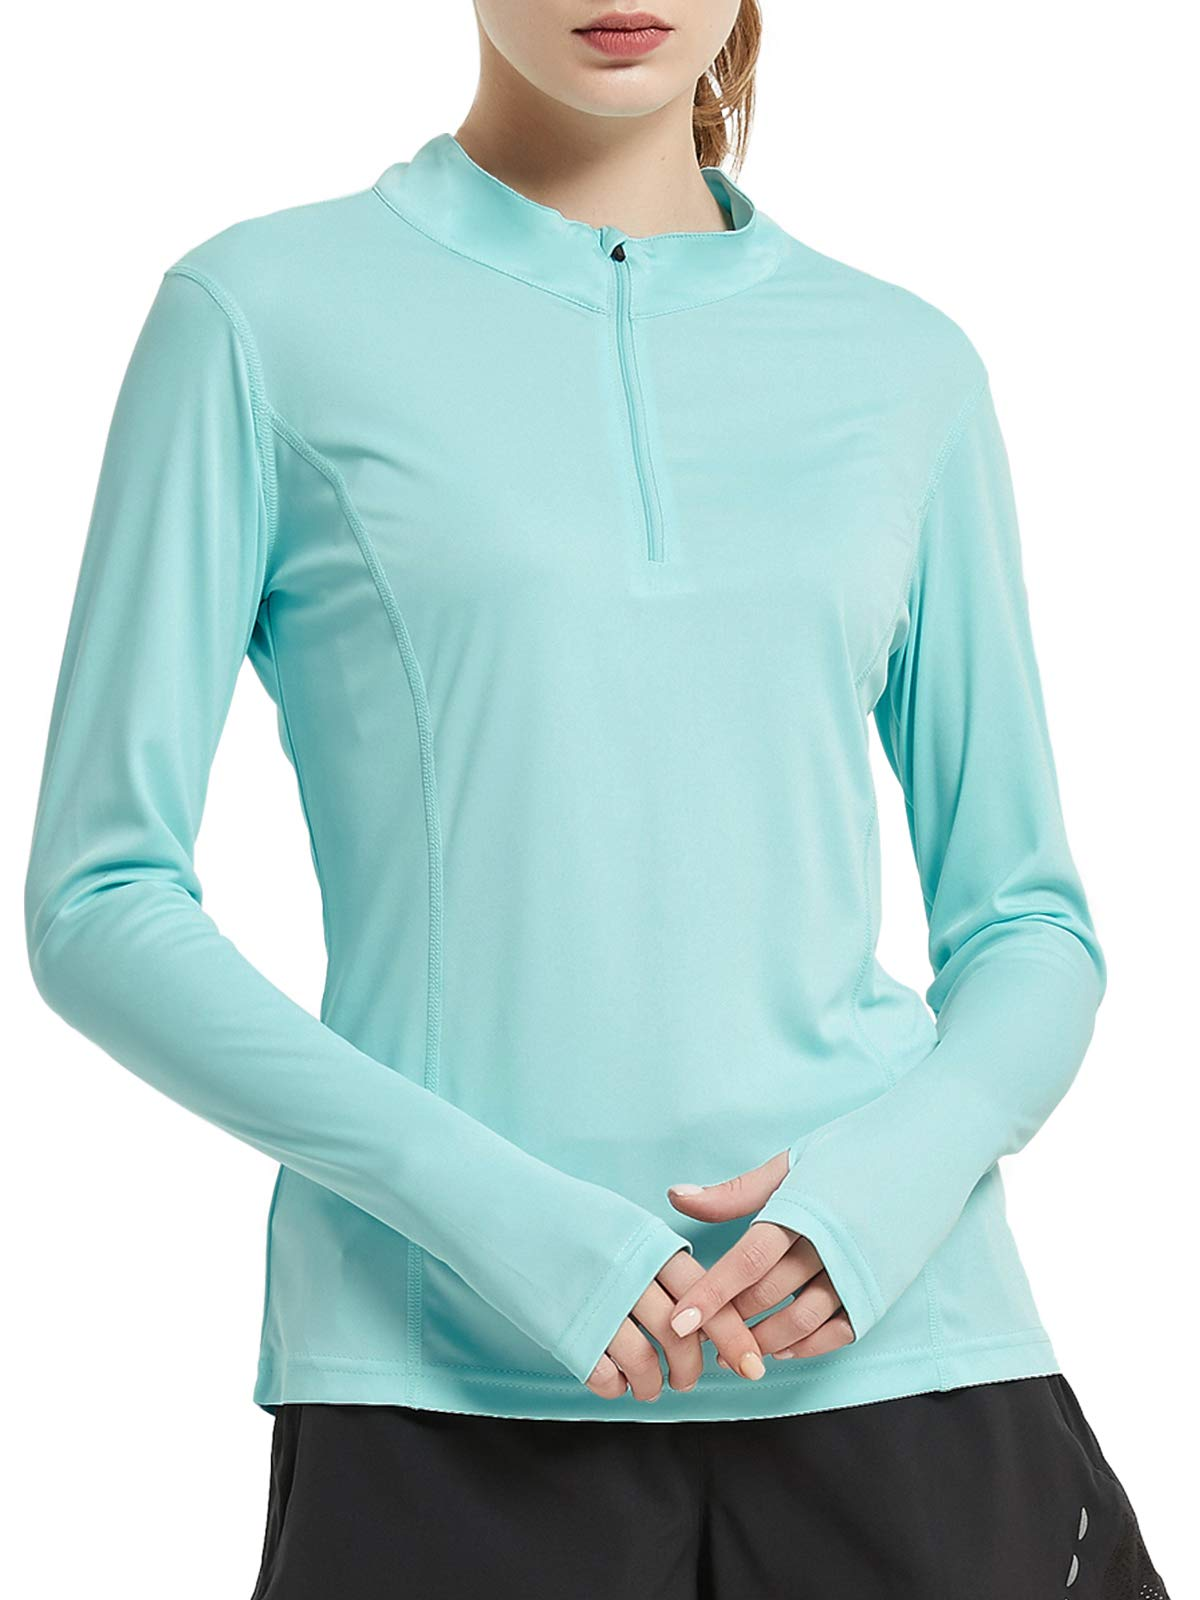 MIER Women's Quarter Zipper UV Athletic Shirts Long Sleeve Sun Protection Running Top with Thumb Hold Outdoor Workout Dry-fit